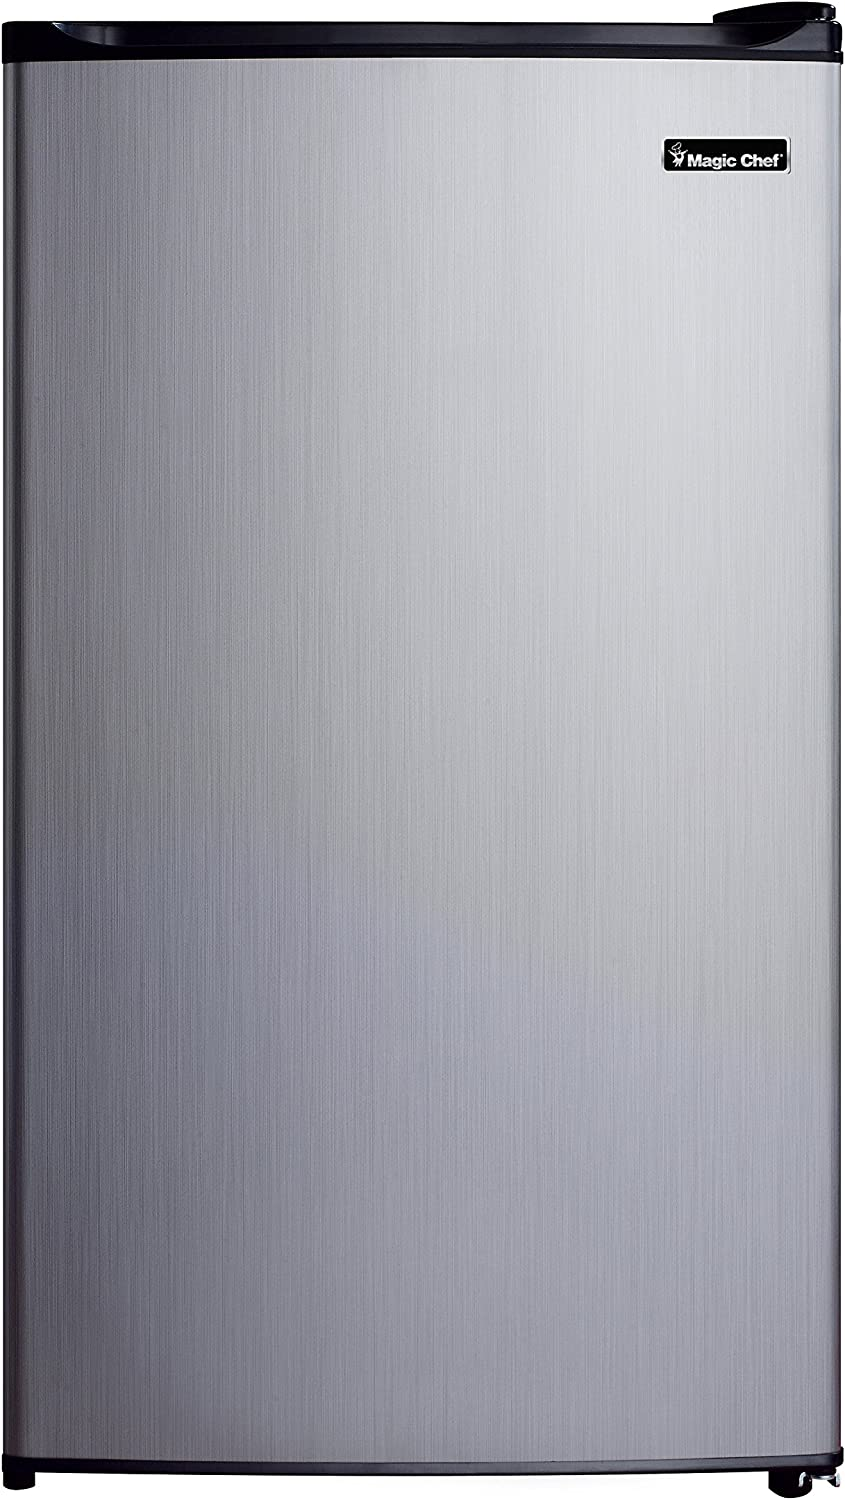 Magic Chef 3.5-Cu. Ft. Refrigerator with Full-Width Freezer Compartment in White